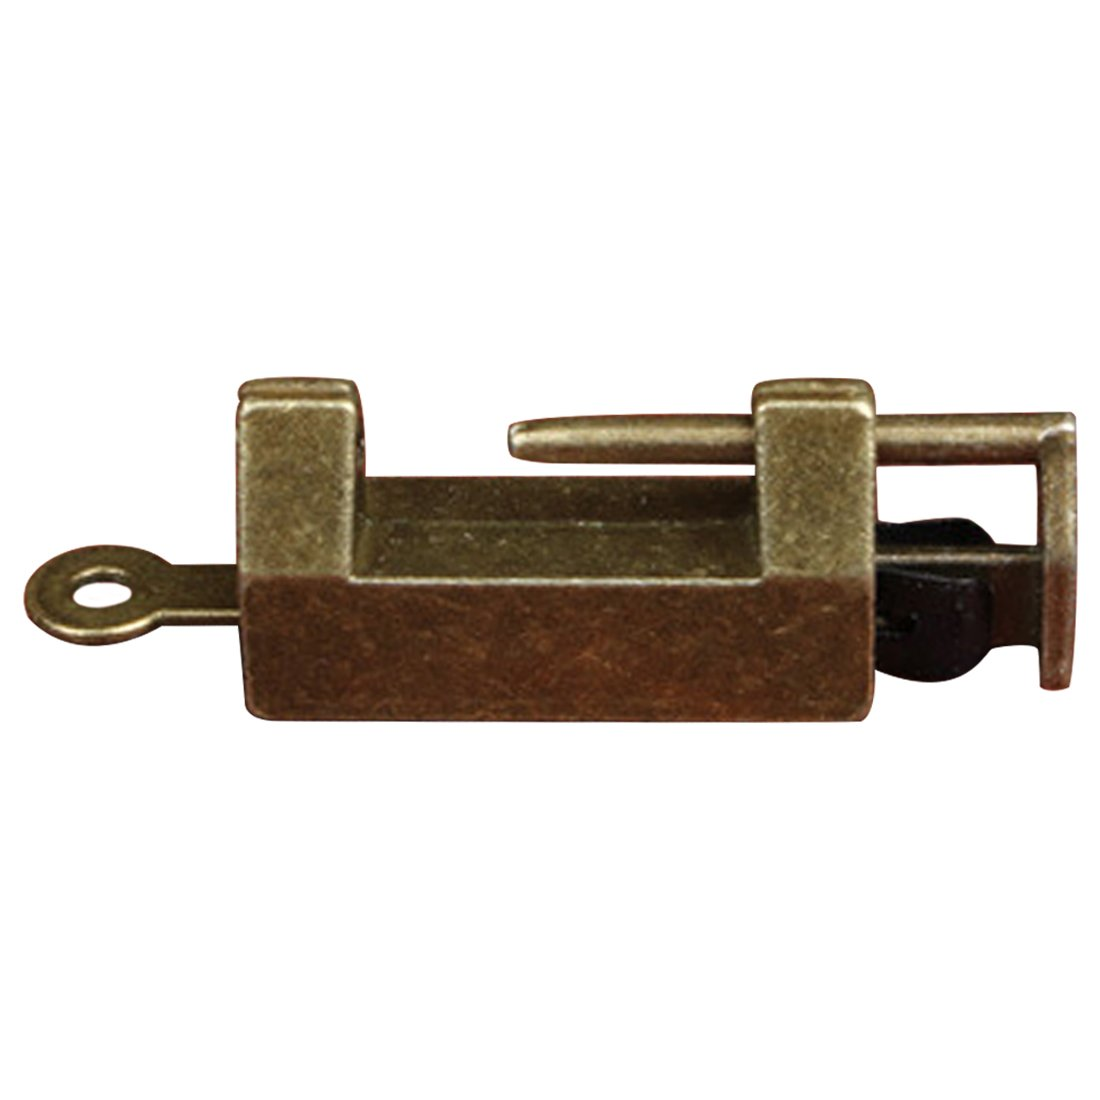 joyliveCY Vintage Antique Iron Chinese Old Lock CY-Buity